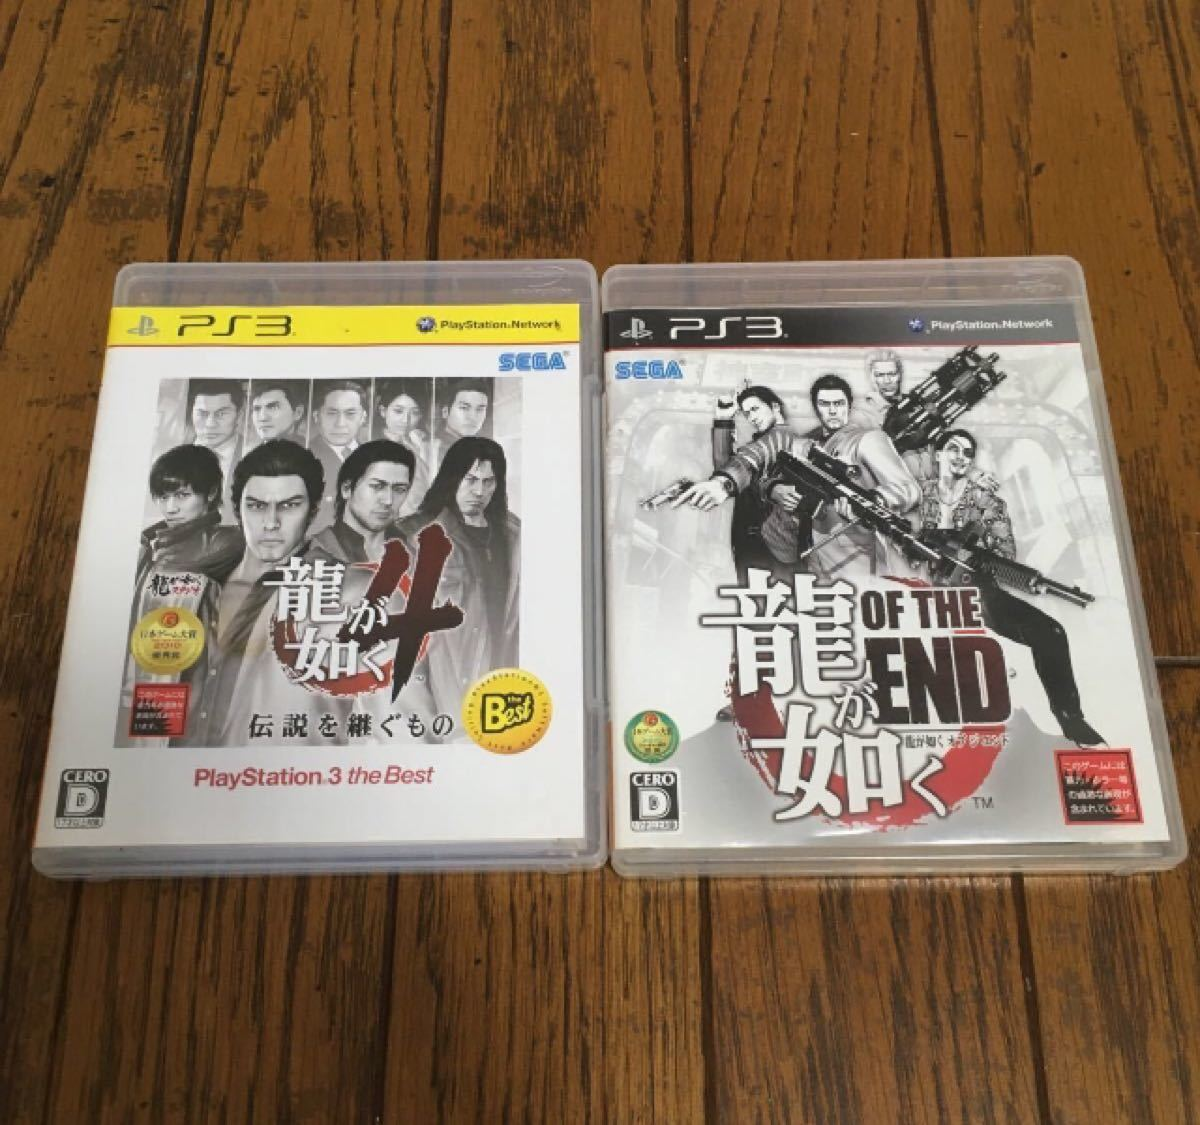 【PS3】 龍が如く4 、龍が如く OF THE END 2本セット